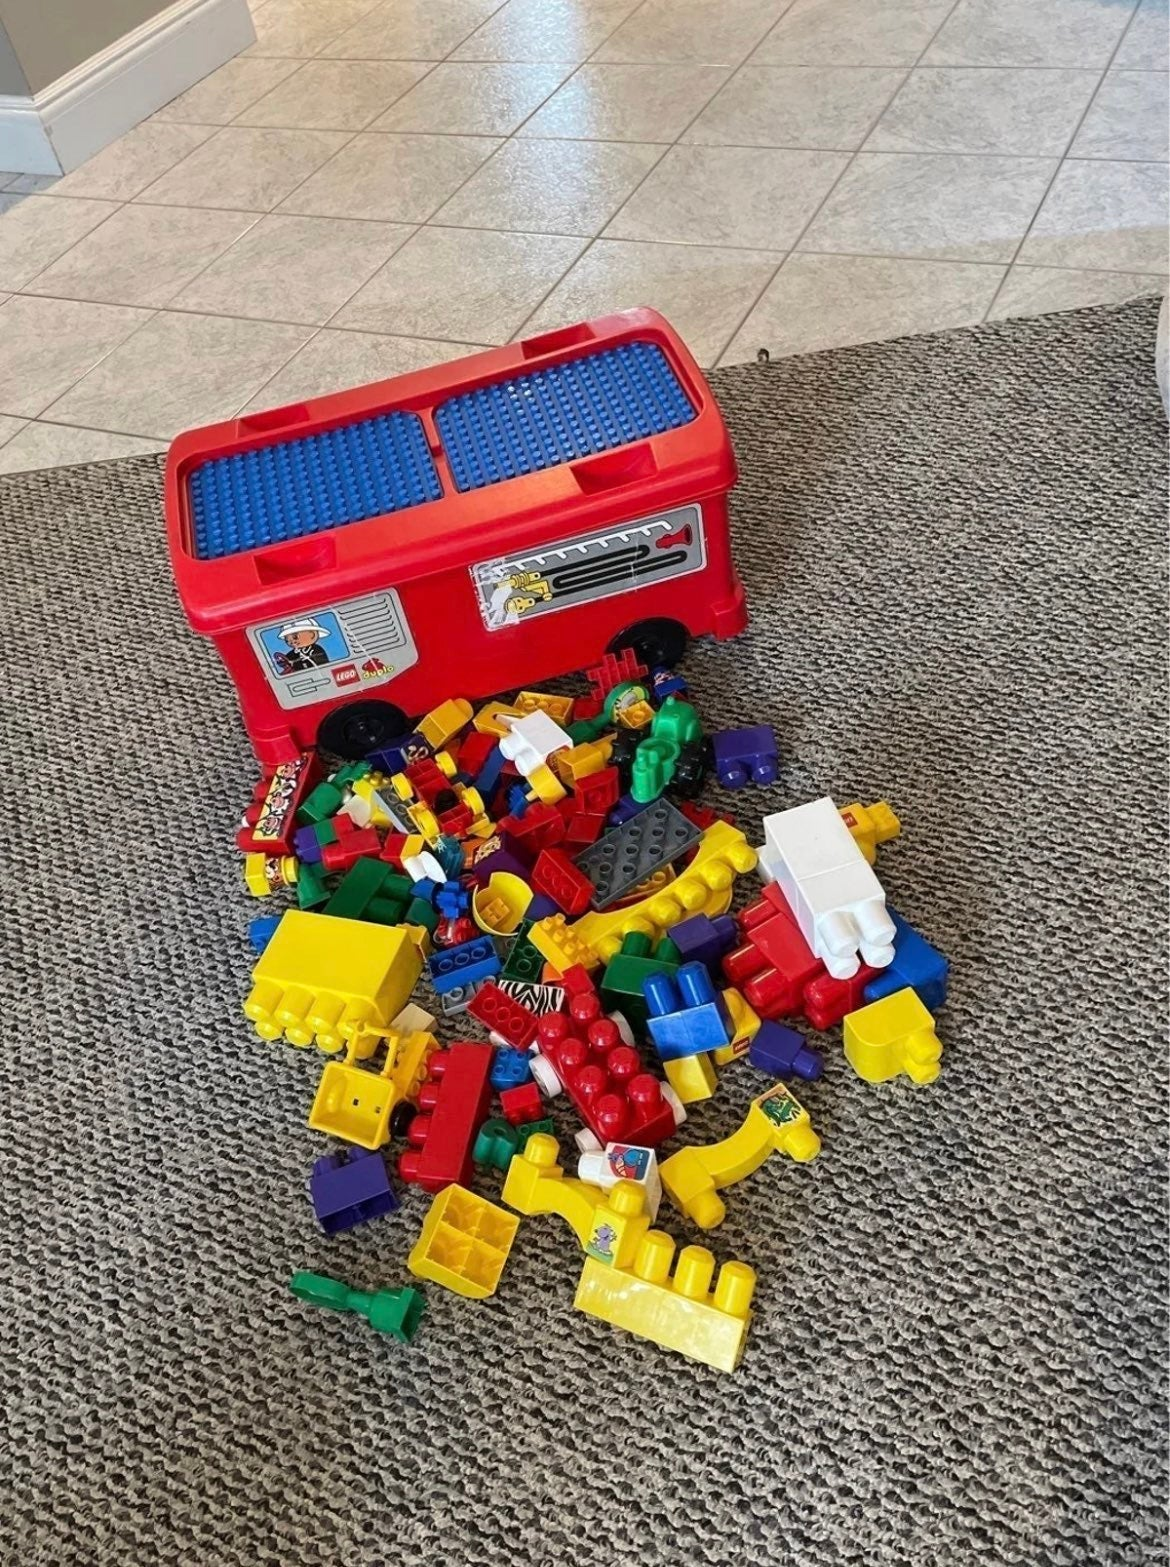 VTG LEGO DUPLO FIRE ENGINE storage